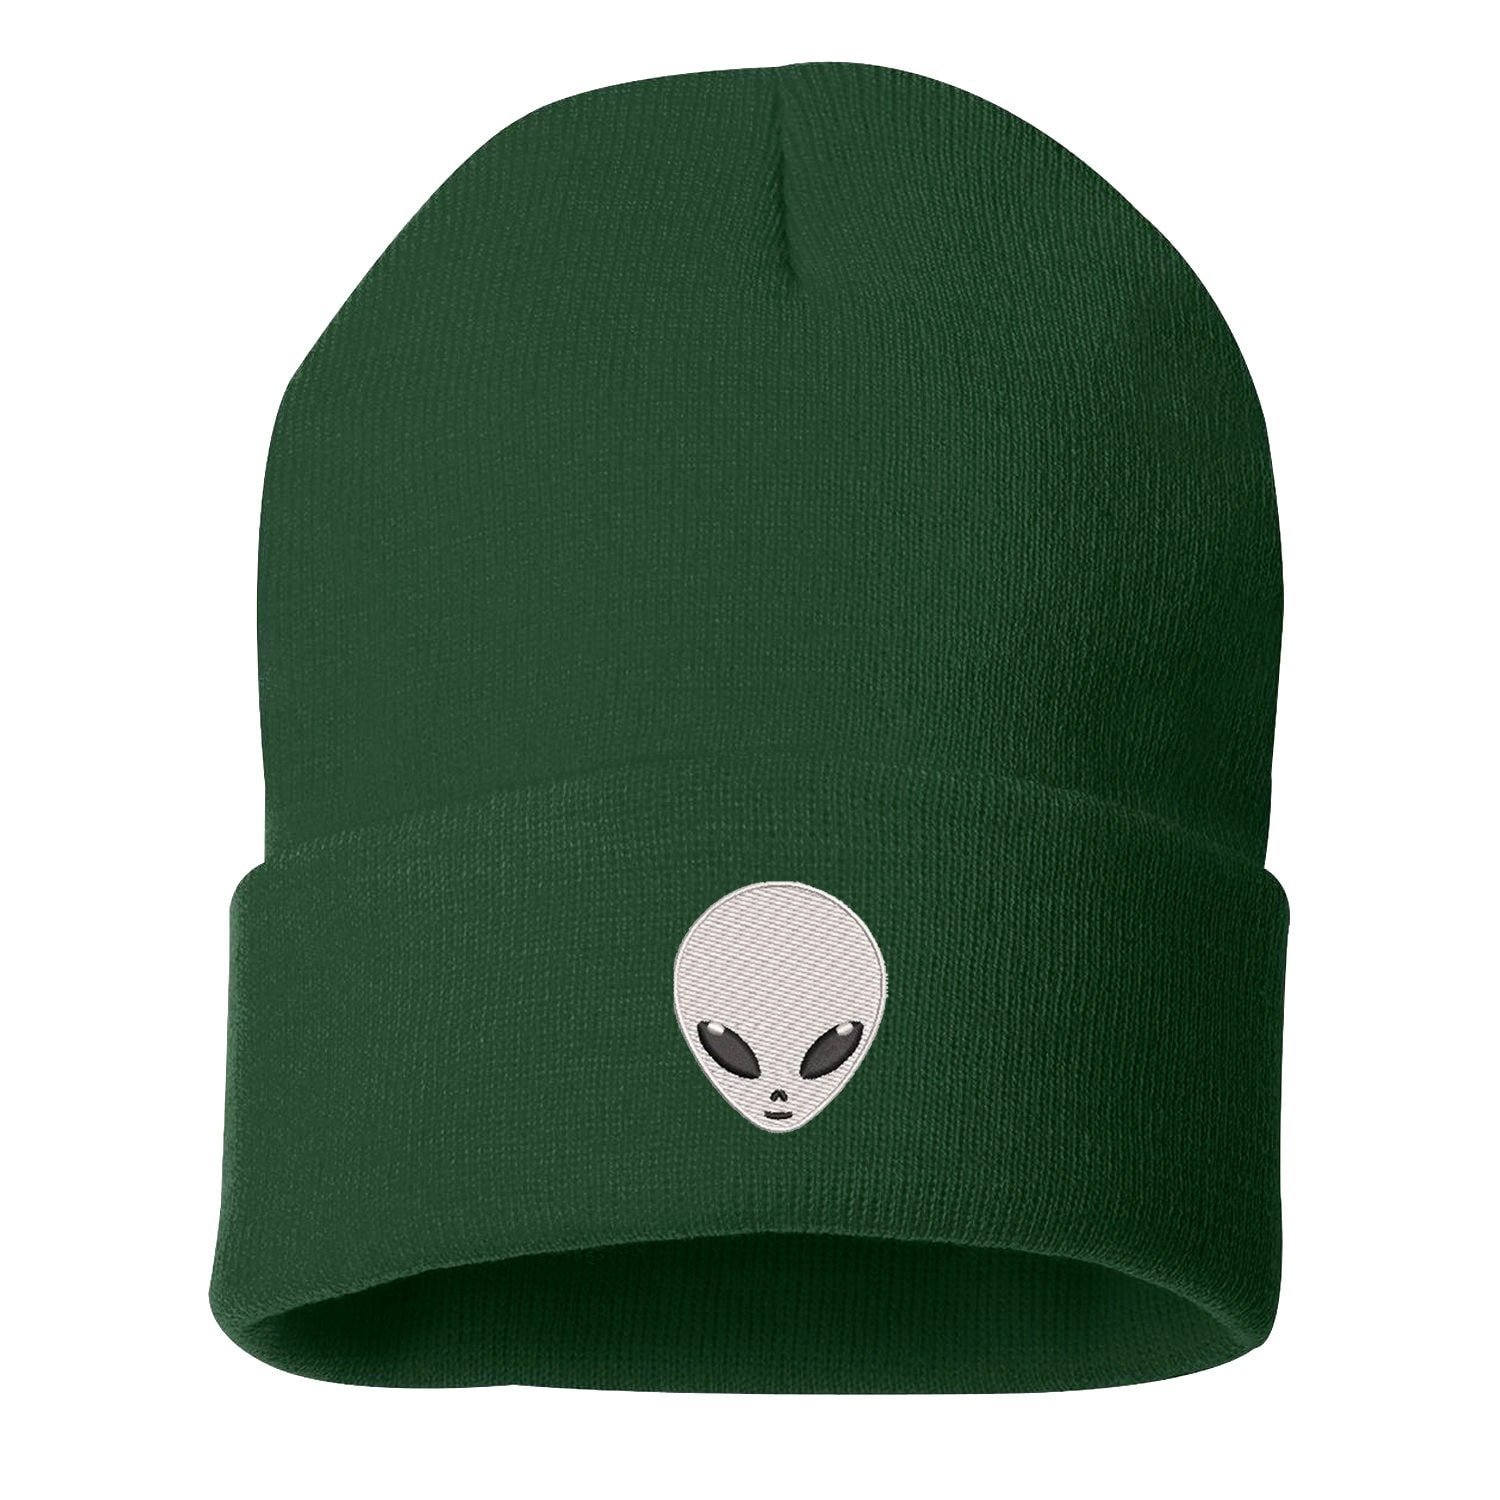 4897e954ed69f ALIEN Cuffed Beanie Embroidered Beanie Halloween Costume Cuffed Cap ...